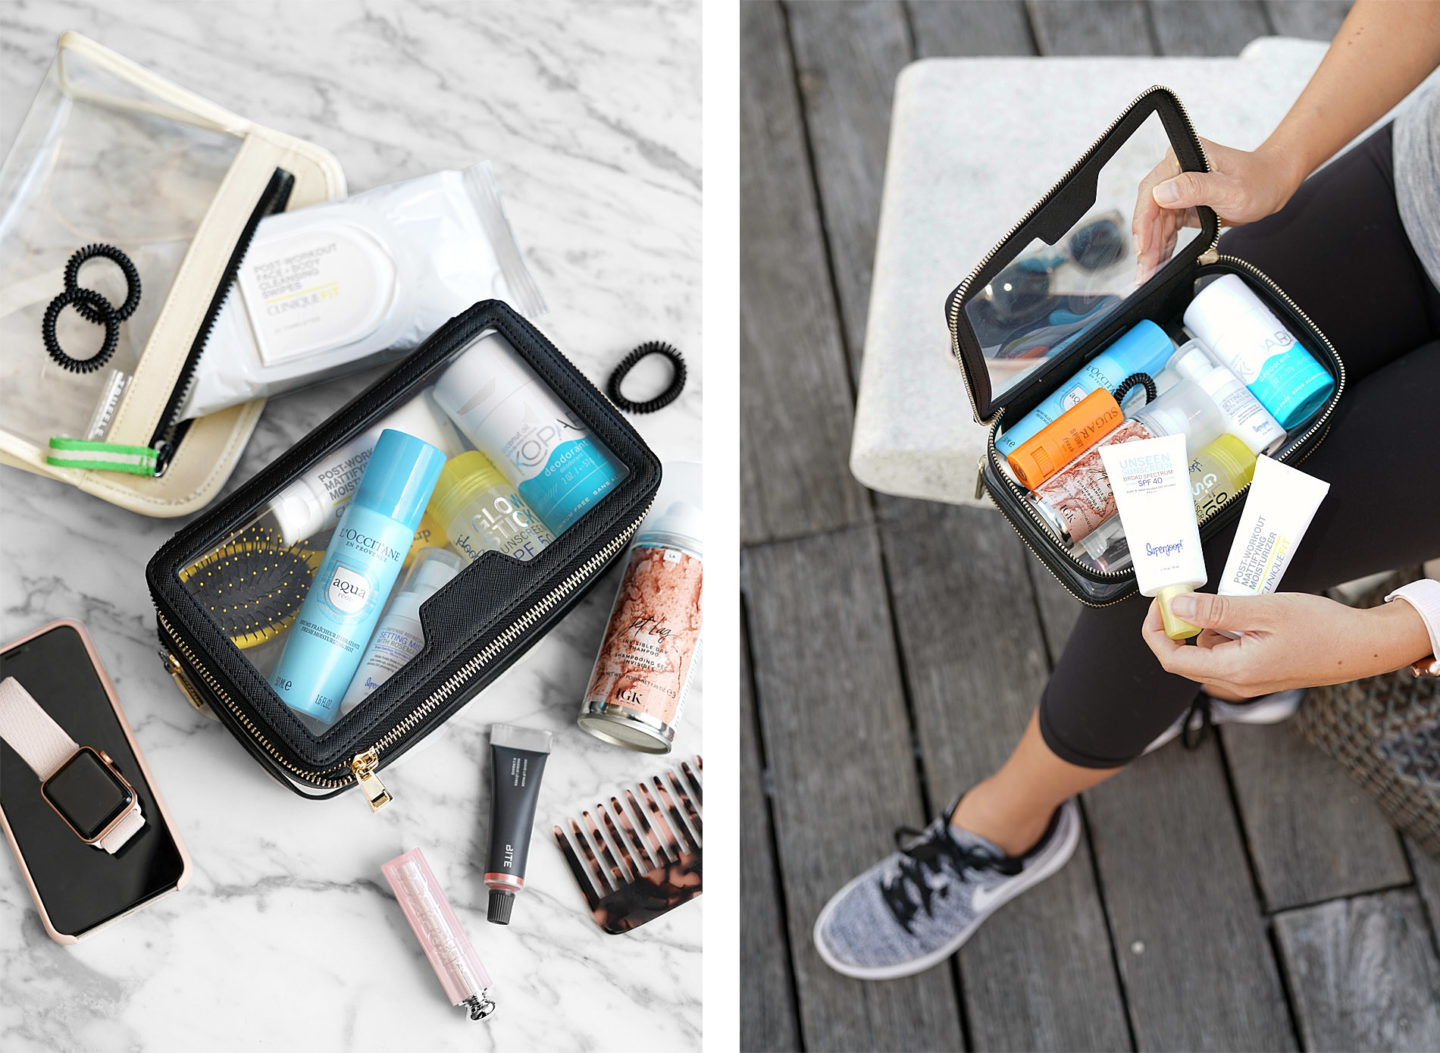 Gym Beauty Essentials dans l'affaire The Daily Edited Transparent Cosmetic